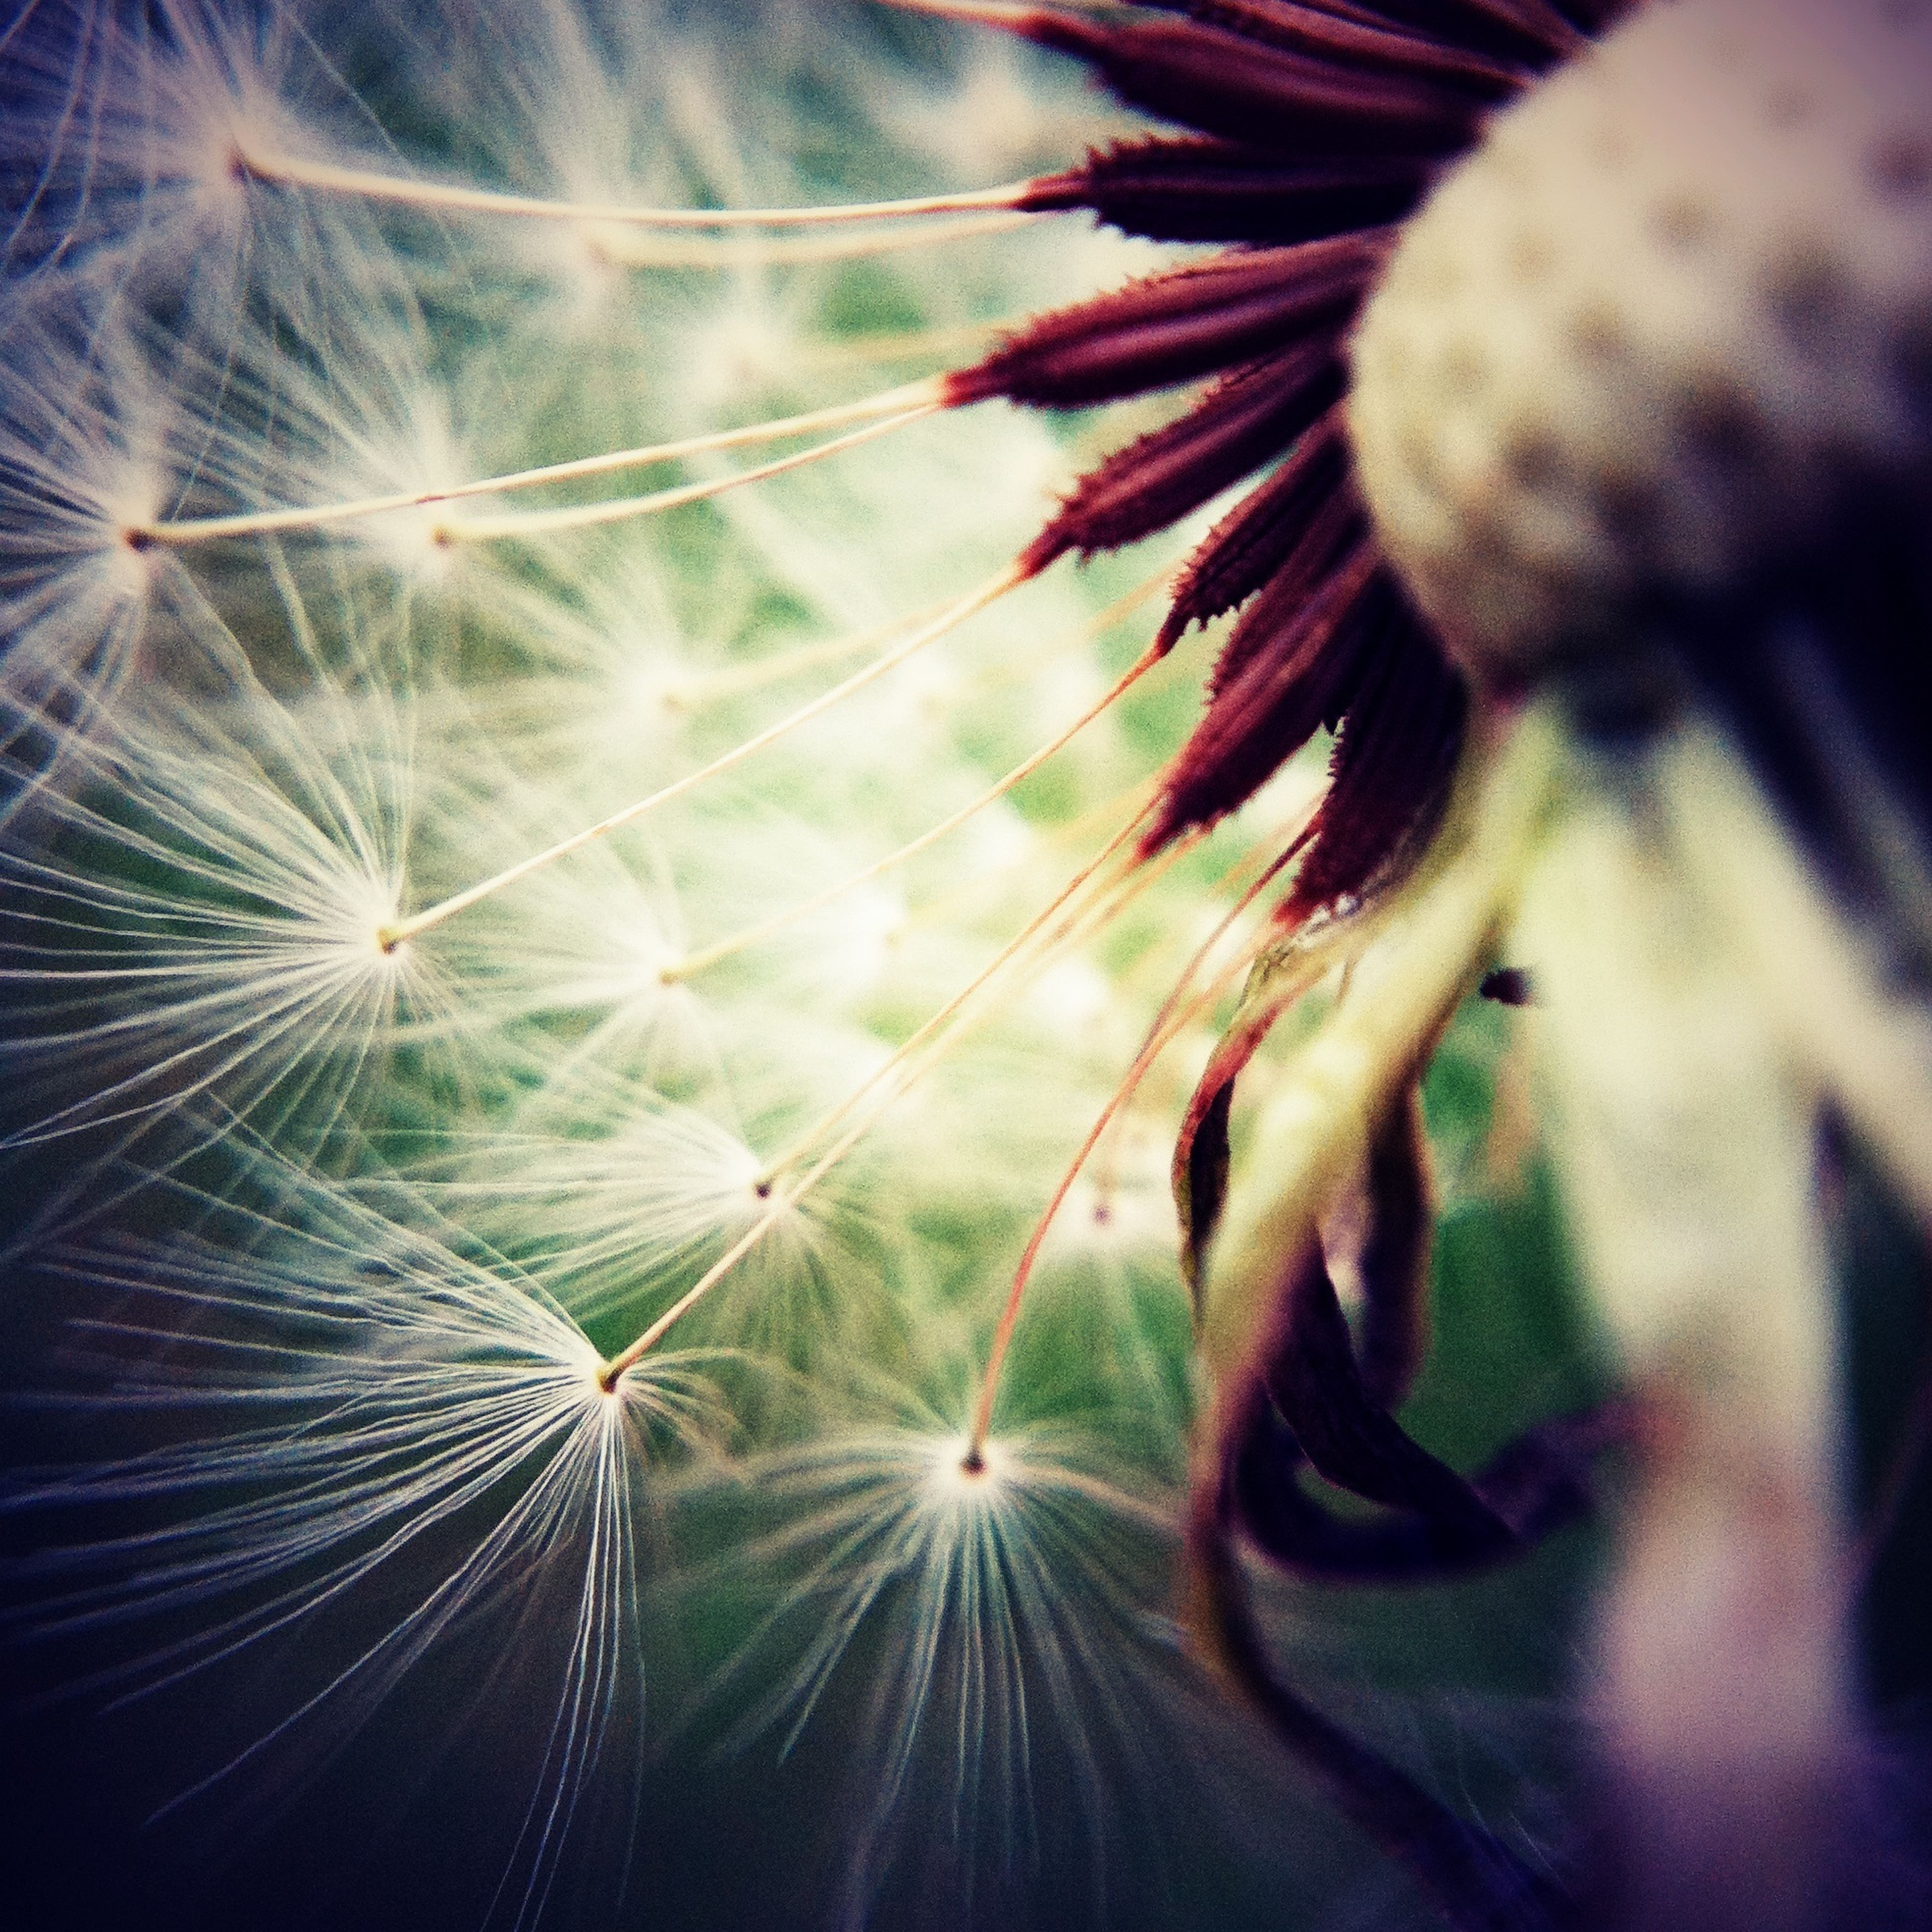 flower, dandelion, growth, fragility, close-up, flower head, nature, beauty in nature, freshness, plant, single flower, softness, no people, outdoors, day, focus on foreground, low angle view, selective focus, full frame, backgrounds